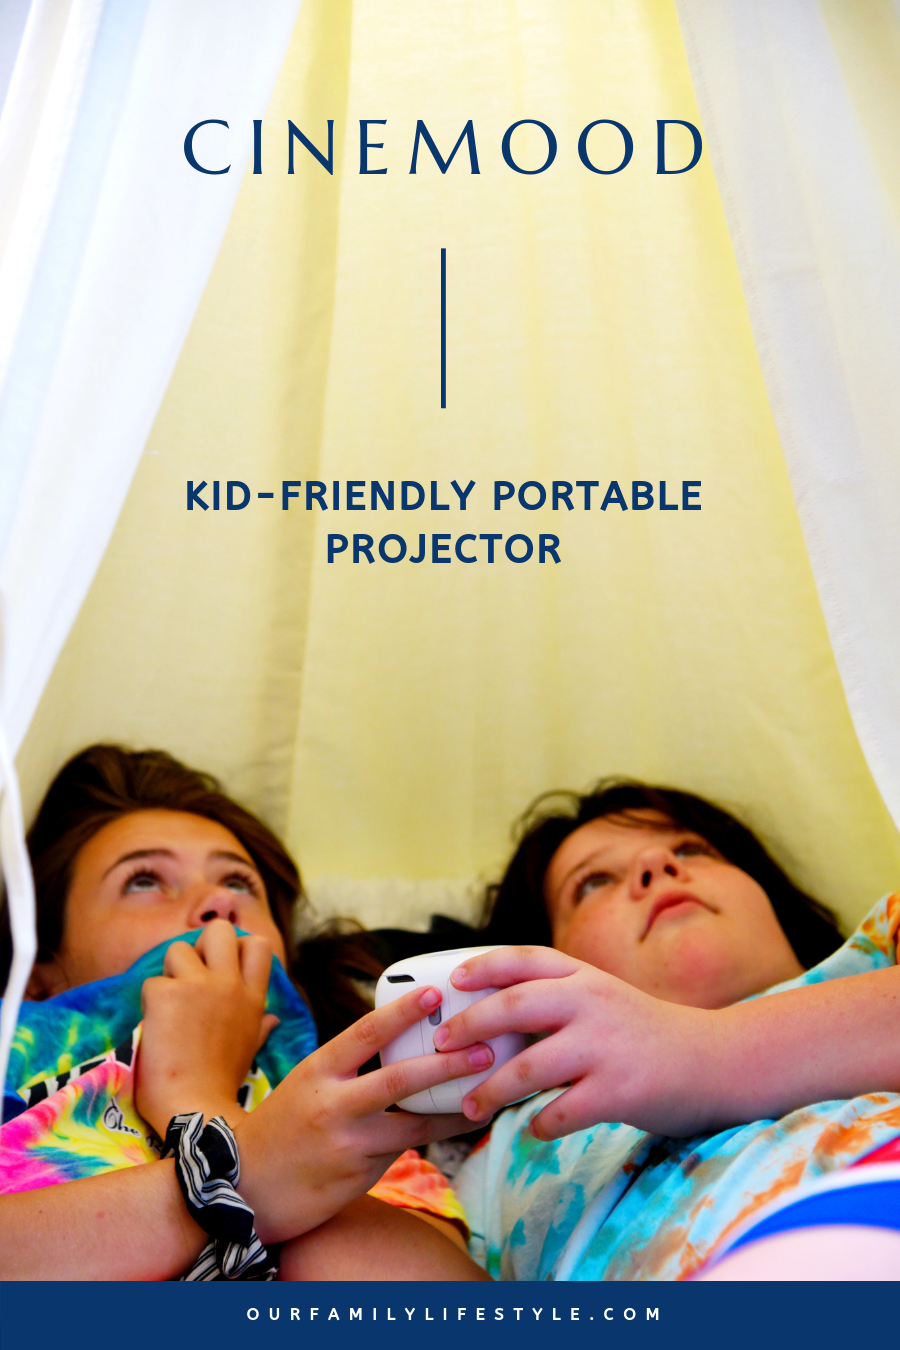 CINEMOOD Kid-Friendly Portable Projector